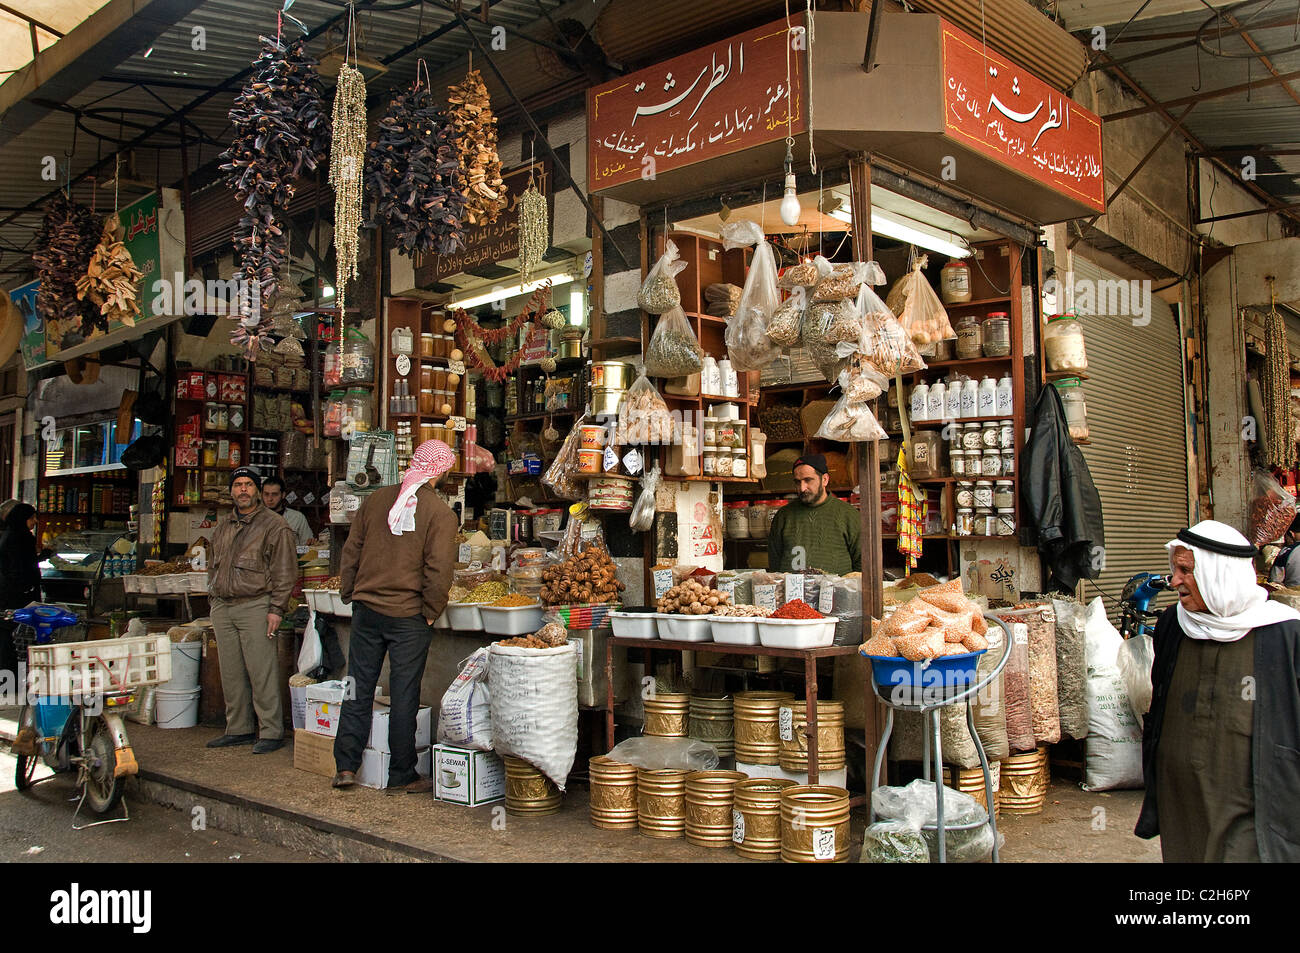 Homs Syria Syrian Souq market grocer grocery trade - Stock Image